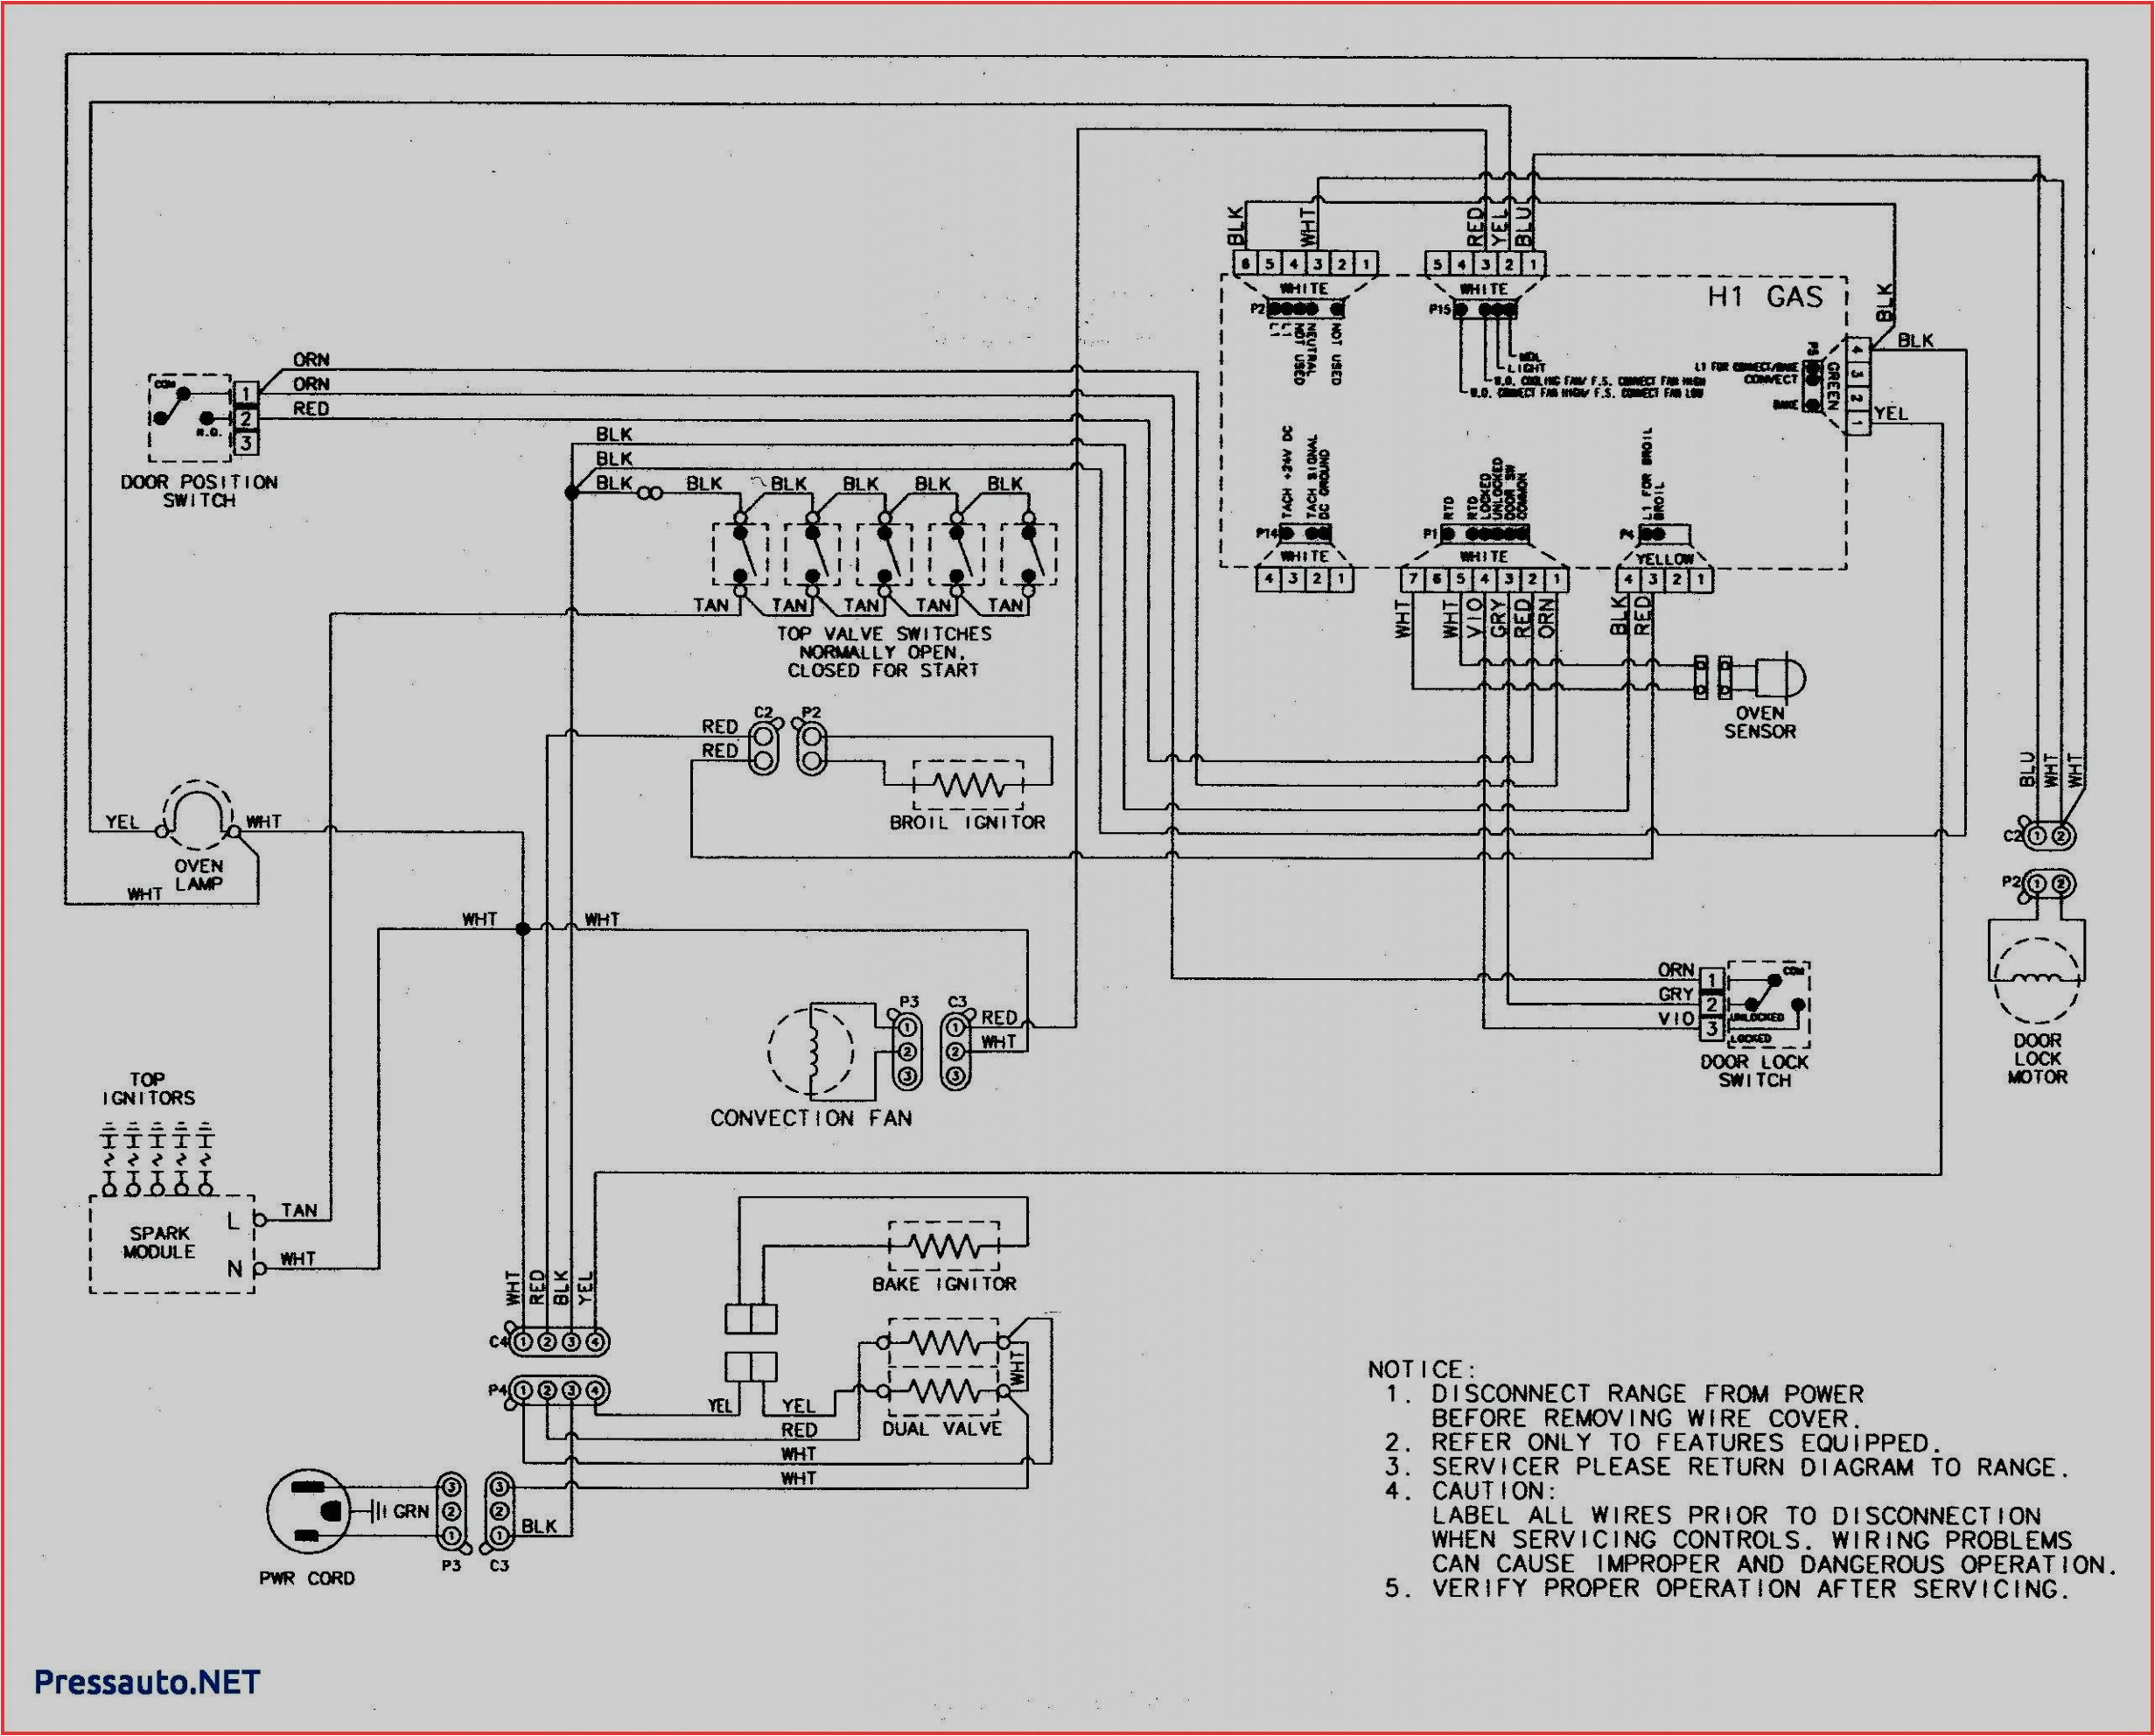 Hvac Wiring Diagrams 101 Hvac Electrical Diagram Wiring Diagram Database